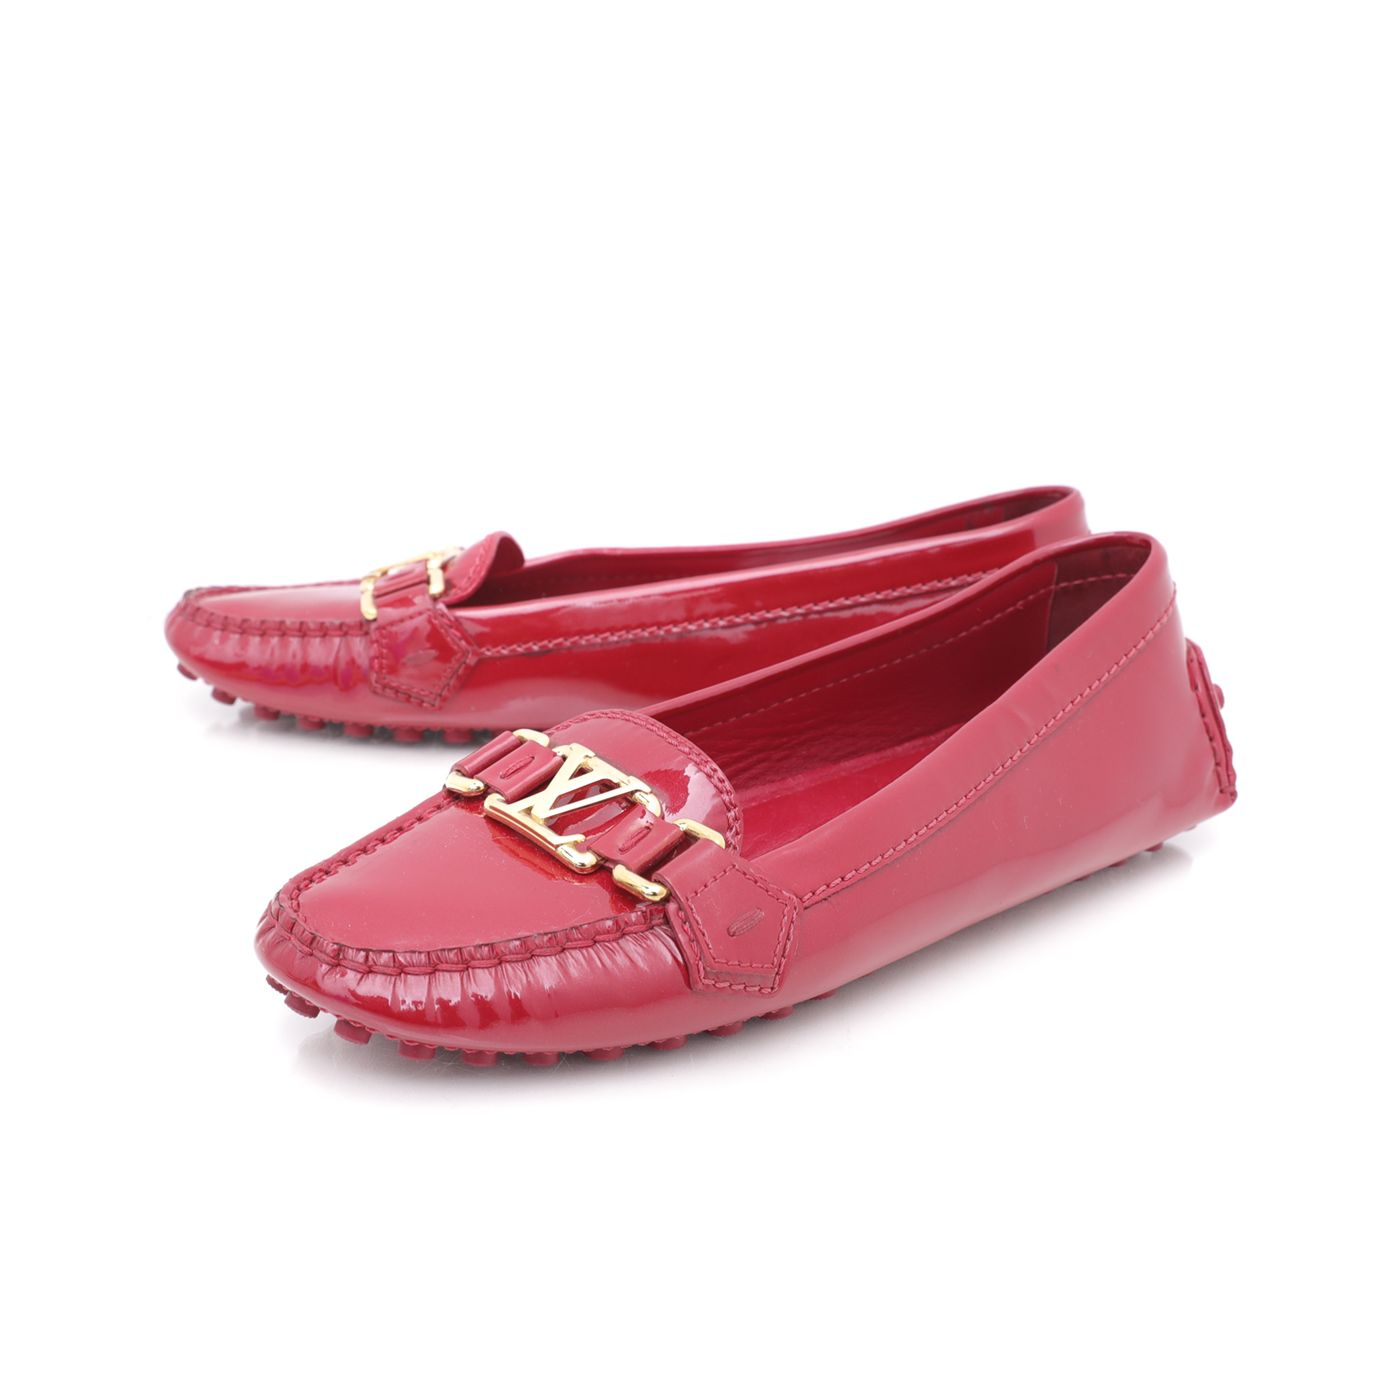 Louis Vuitton Red Vernis Loafer 37